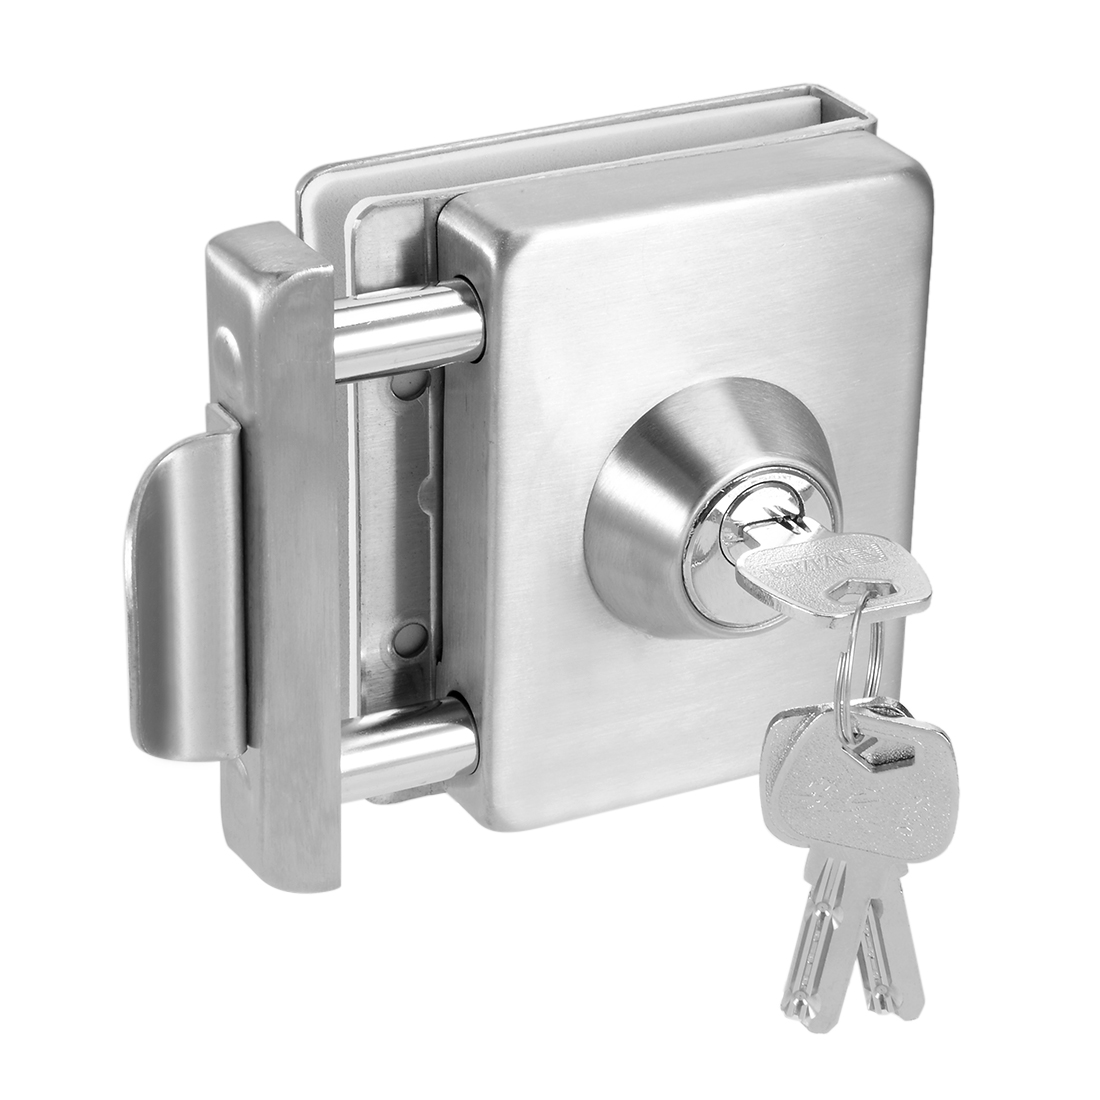 10mm-12mm Glass Door Double Latch Lock Stainless Steel Brushed Finish w Keys